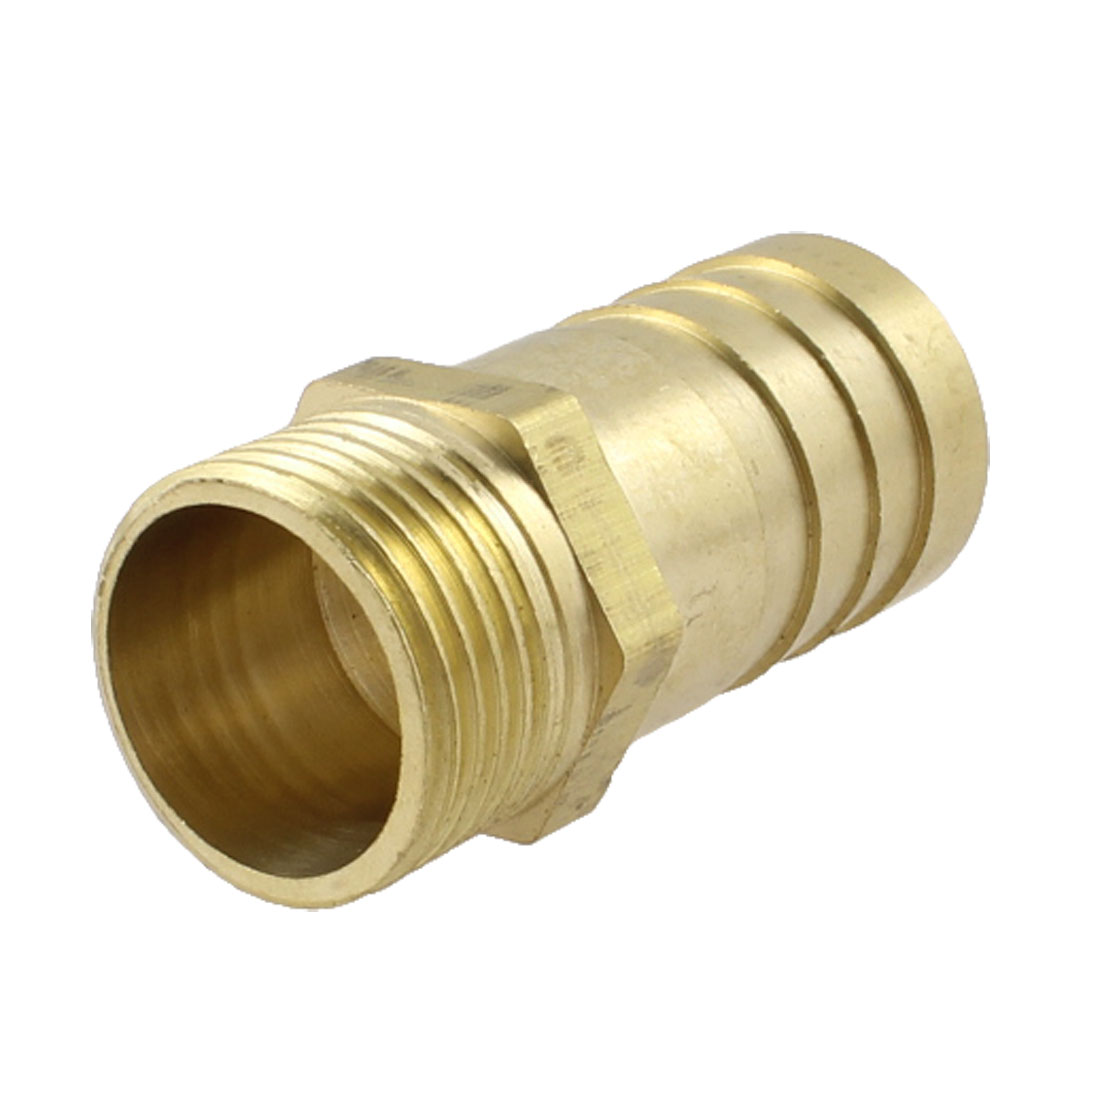 "3/8"" PT Thread 16mm Air Gas Hose Barb Fitting Coupler Adapter"